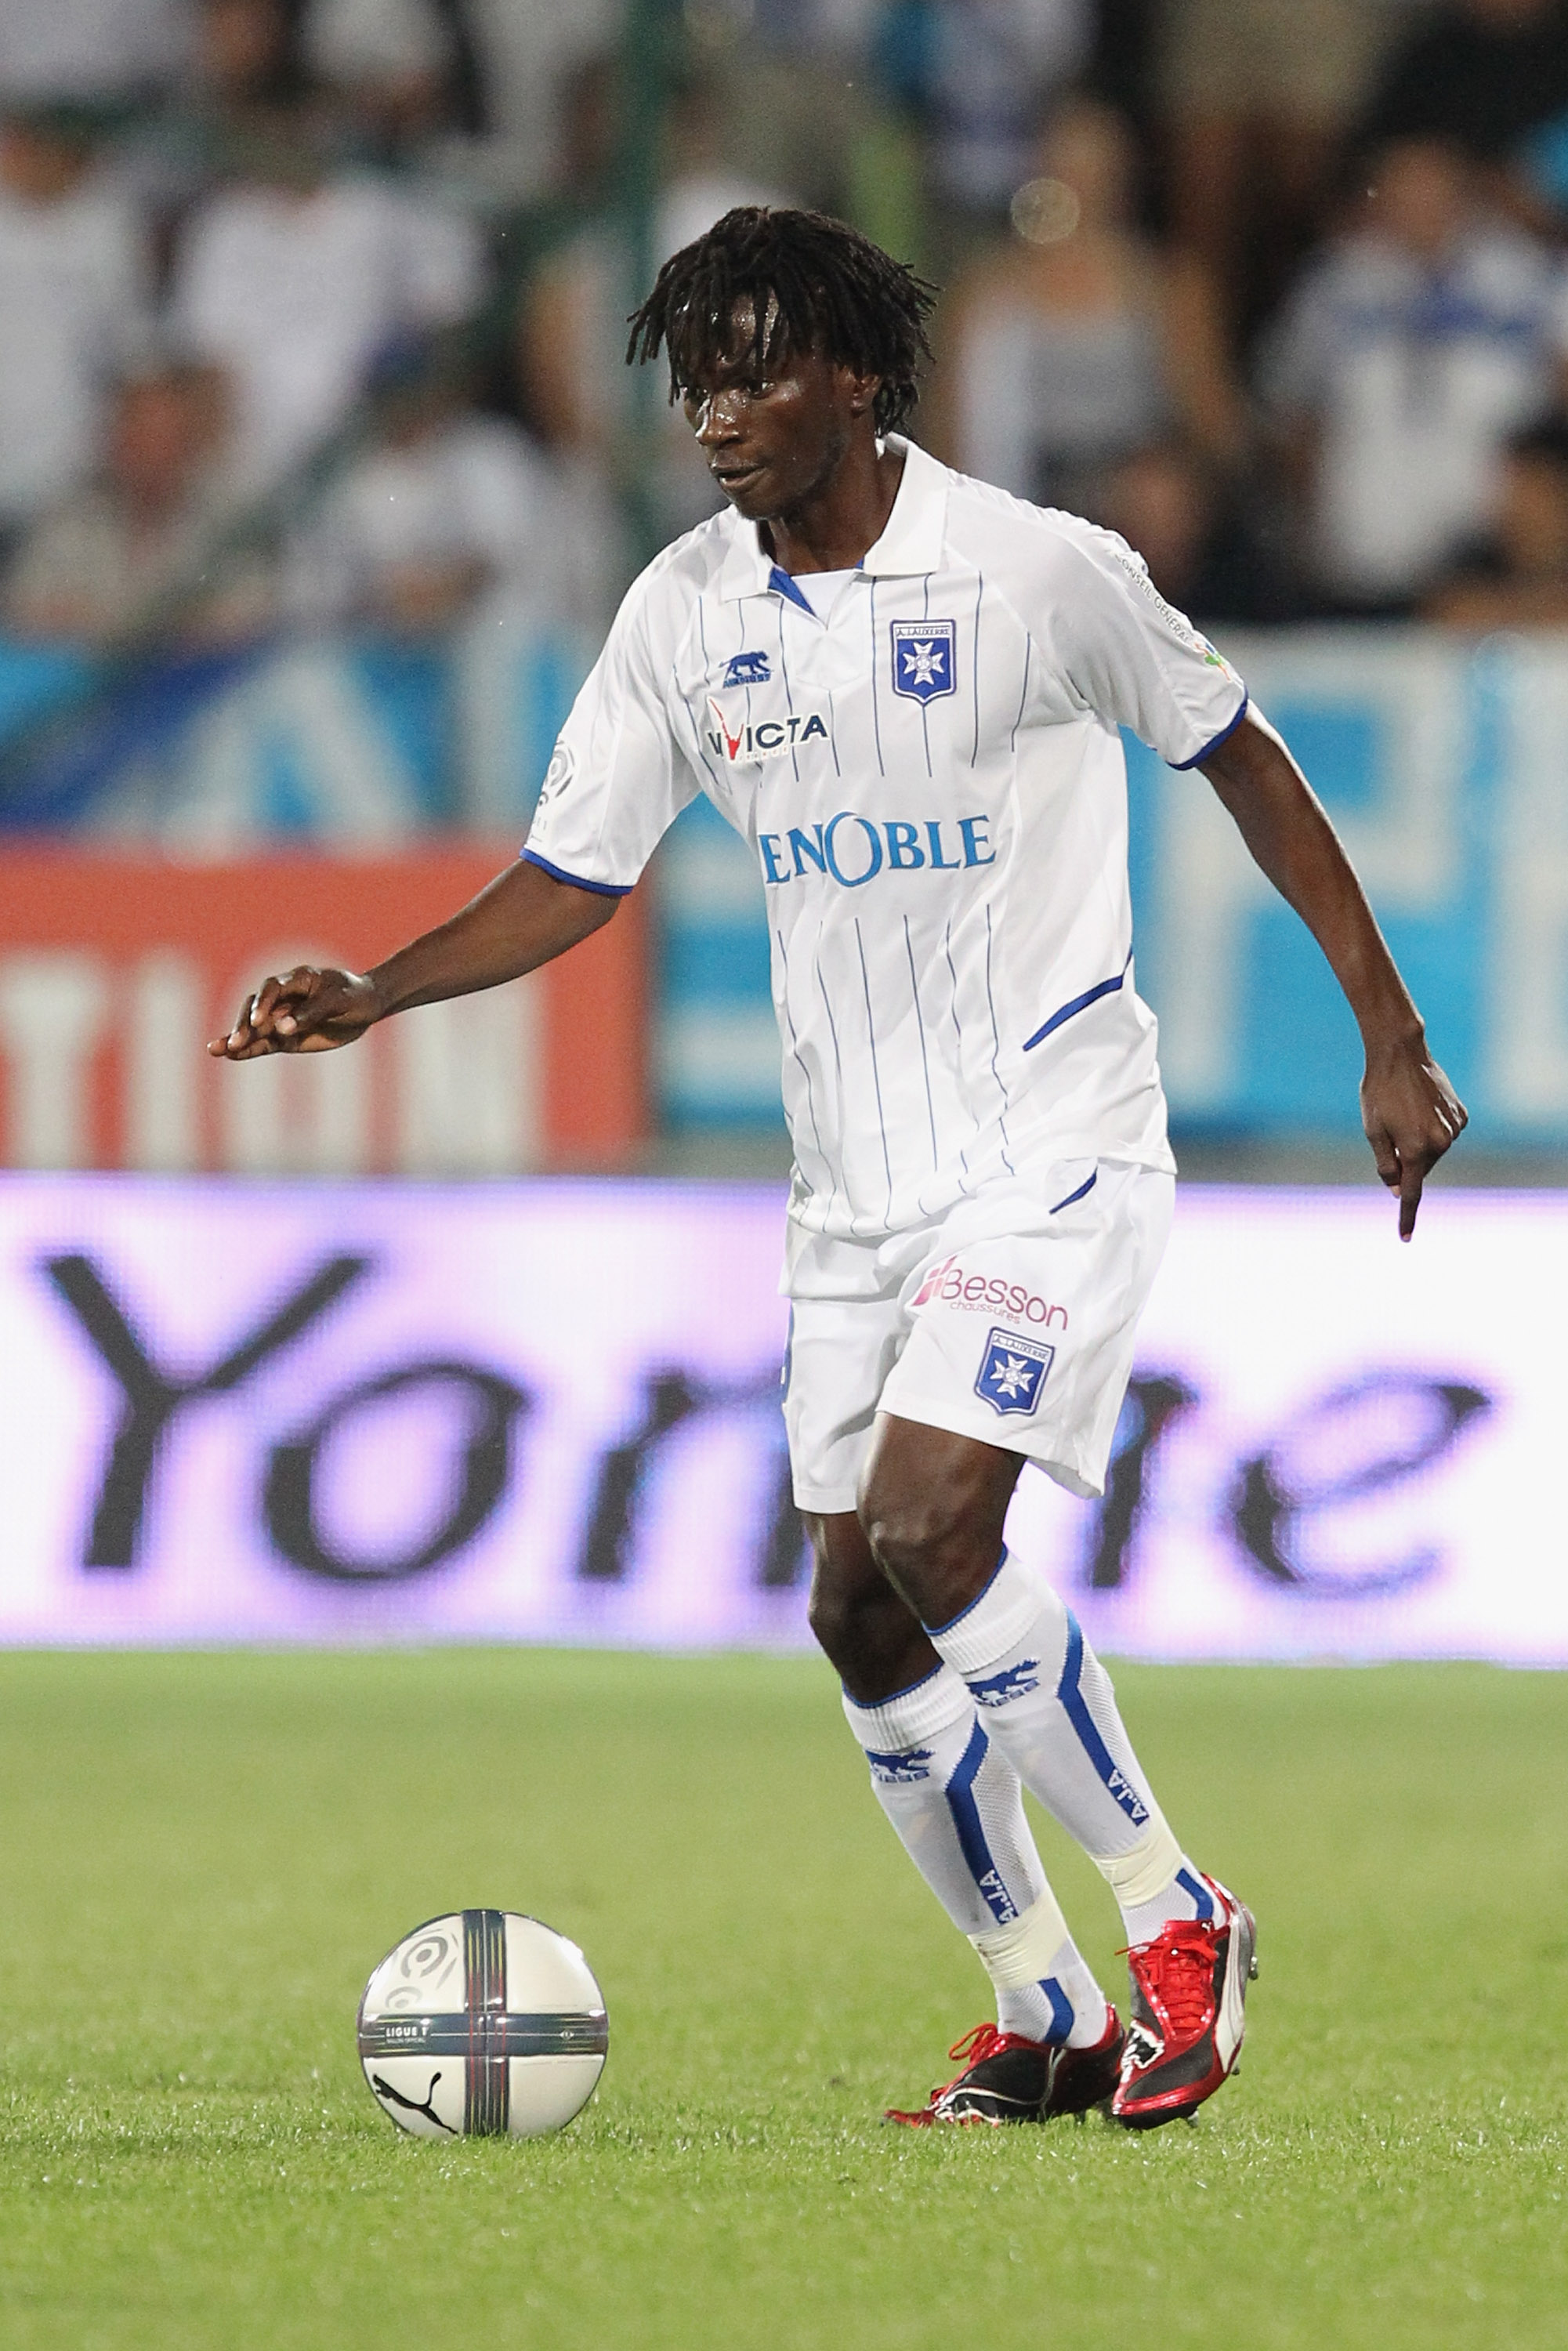 AUXERRE, FRANCE - AUGUST 07:  Delvin Ndinga of Auxerre in action during  the Ligue 1 match between Auxerre and Lorient at Abbe-Deschamp Stadium on August 7, 2010 in Auxerre, France.  (Photo by Julien M. Hekimian/Getty Images)